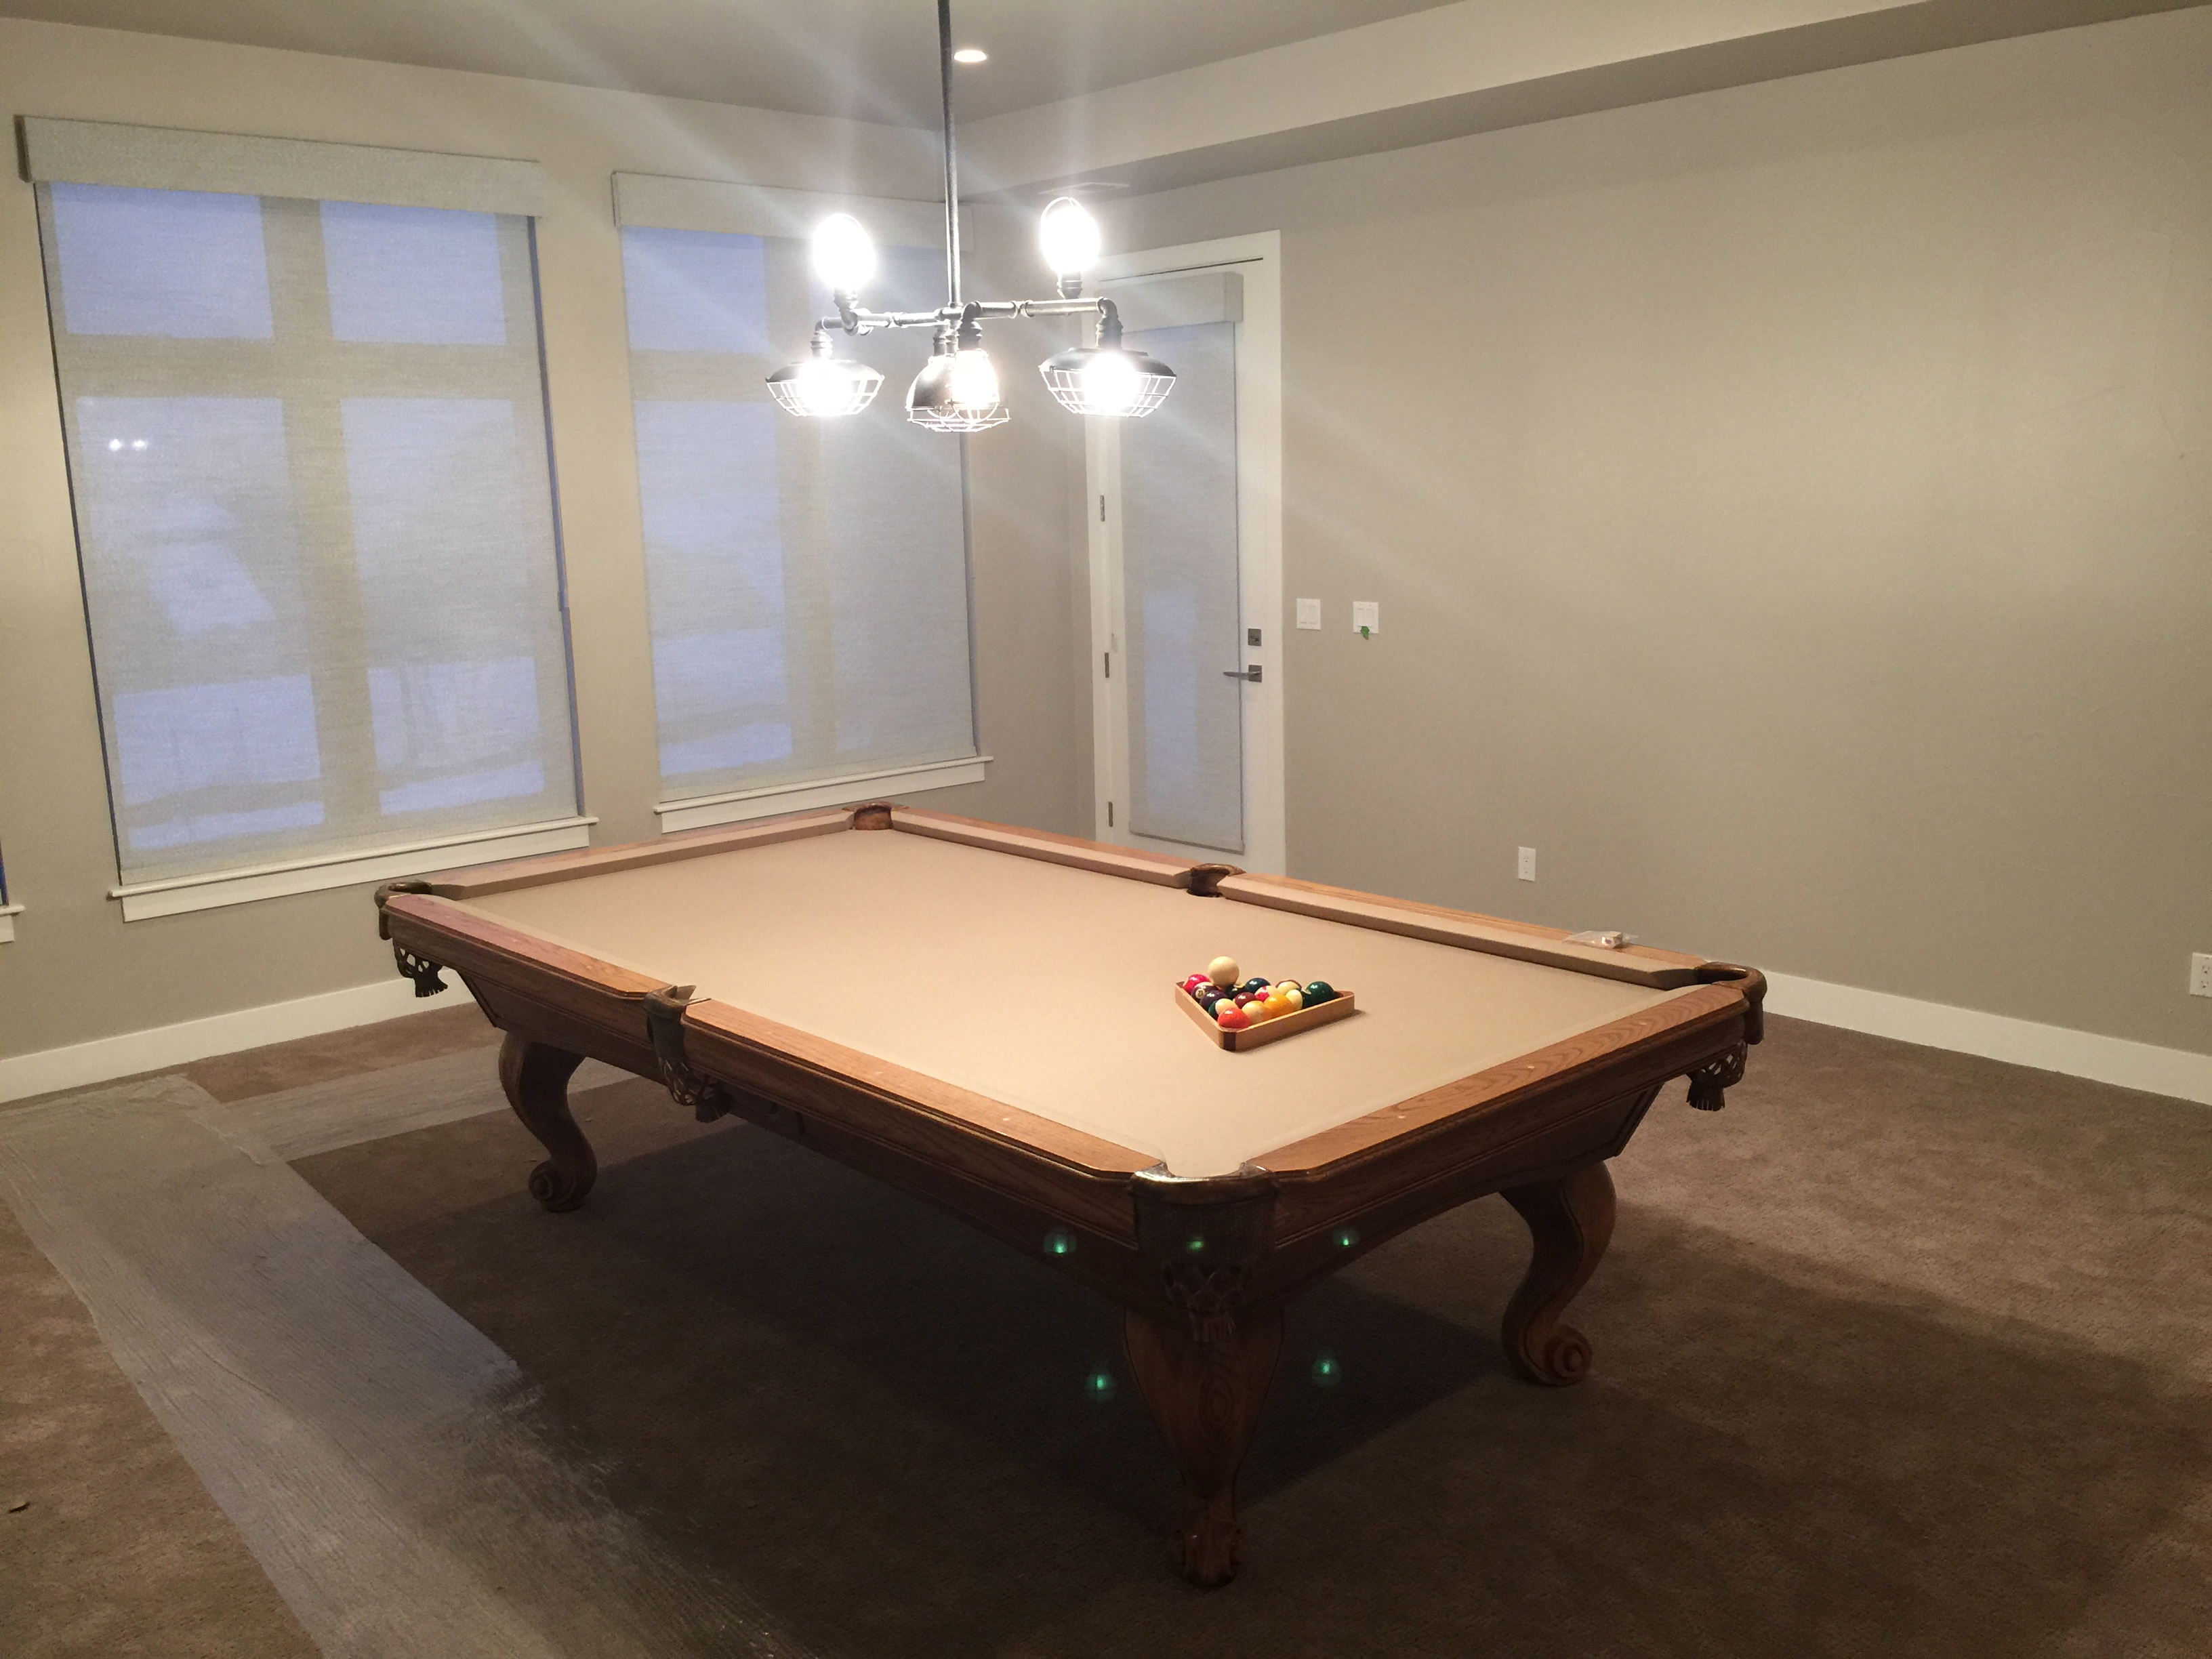 The pool table experts blog for Oak beauty pool table